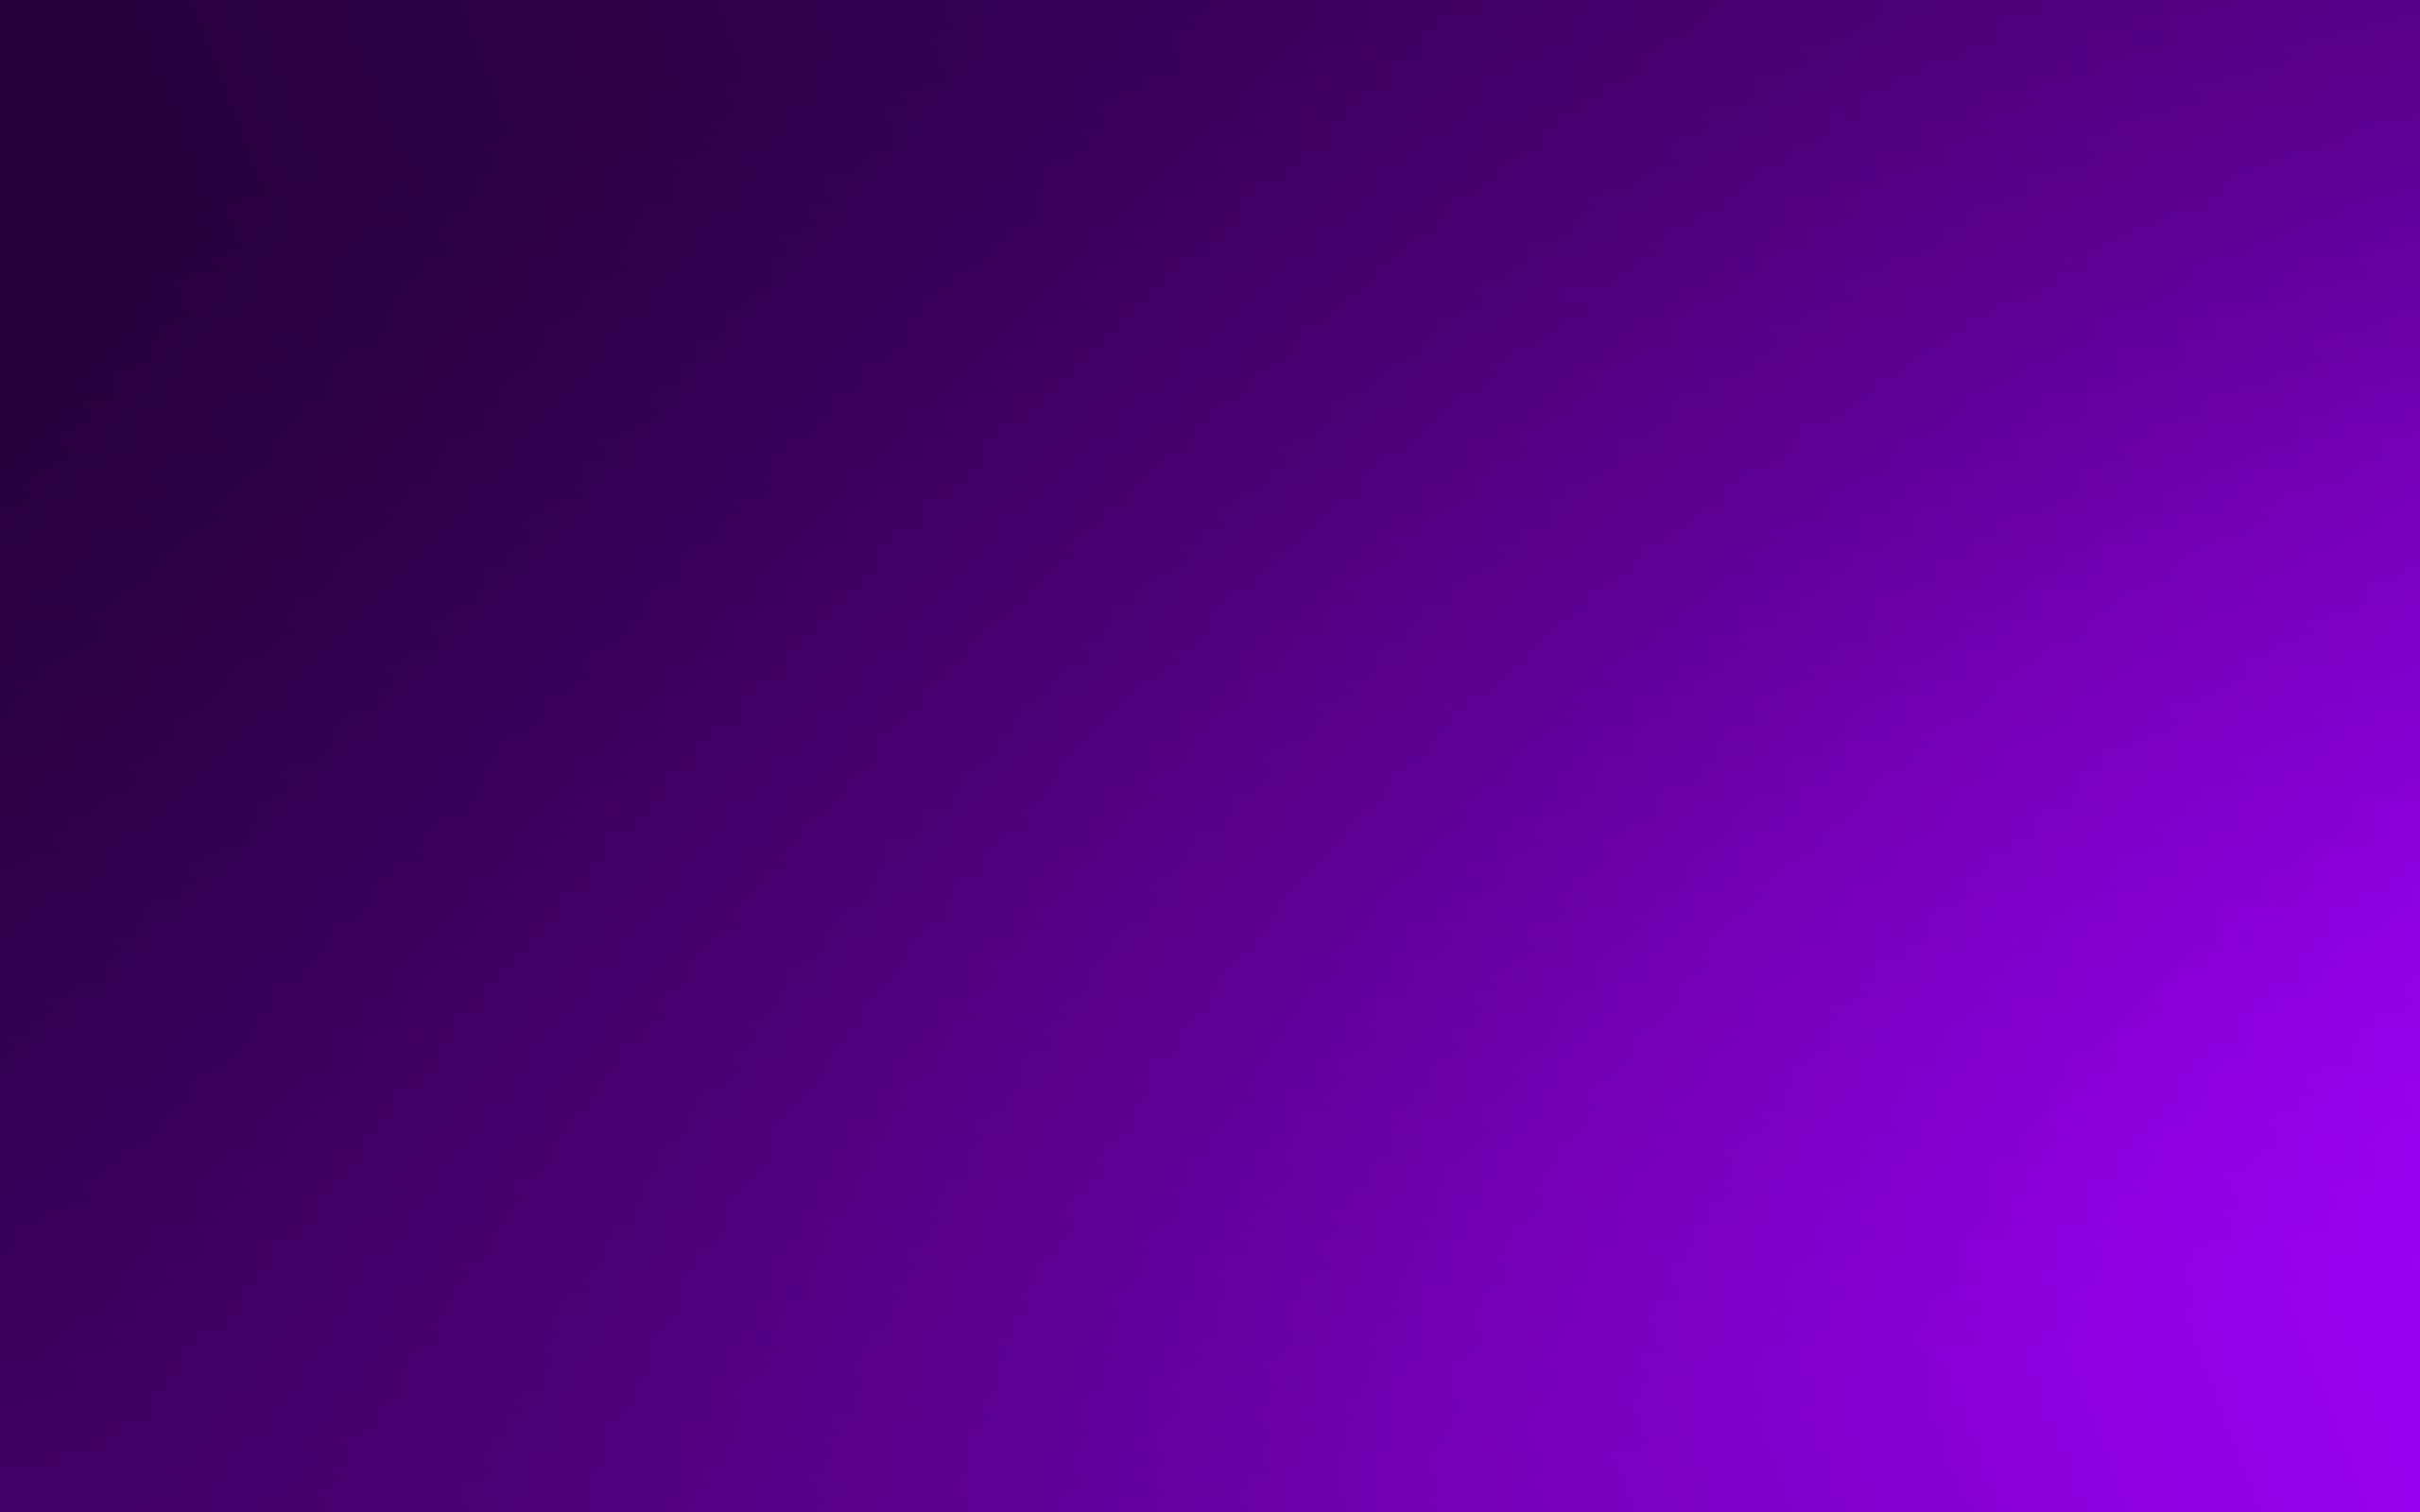 Dark solid purple wallpaper wallpapersafari for Plain purple wallpaper